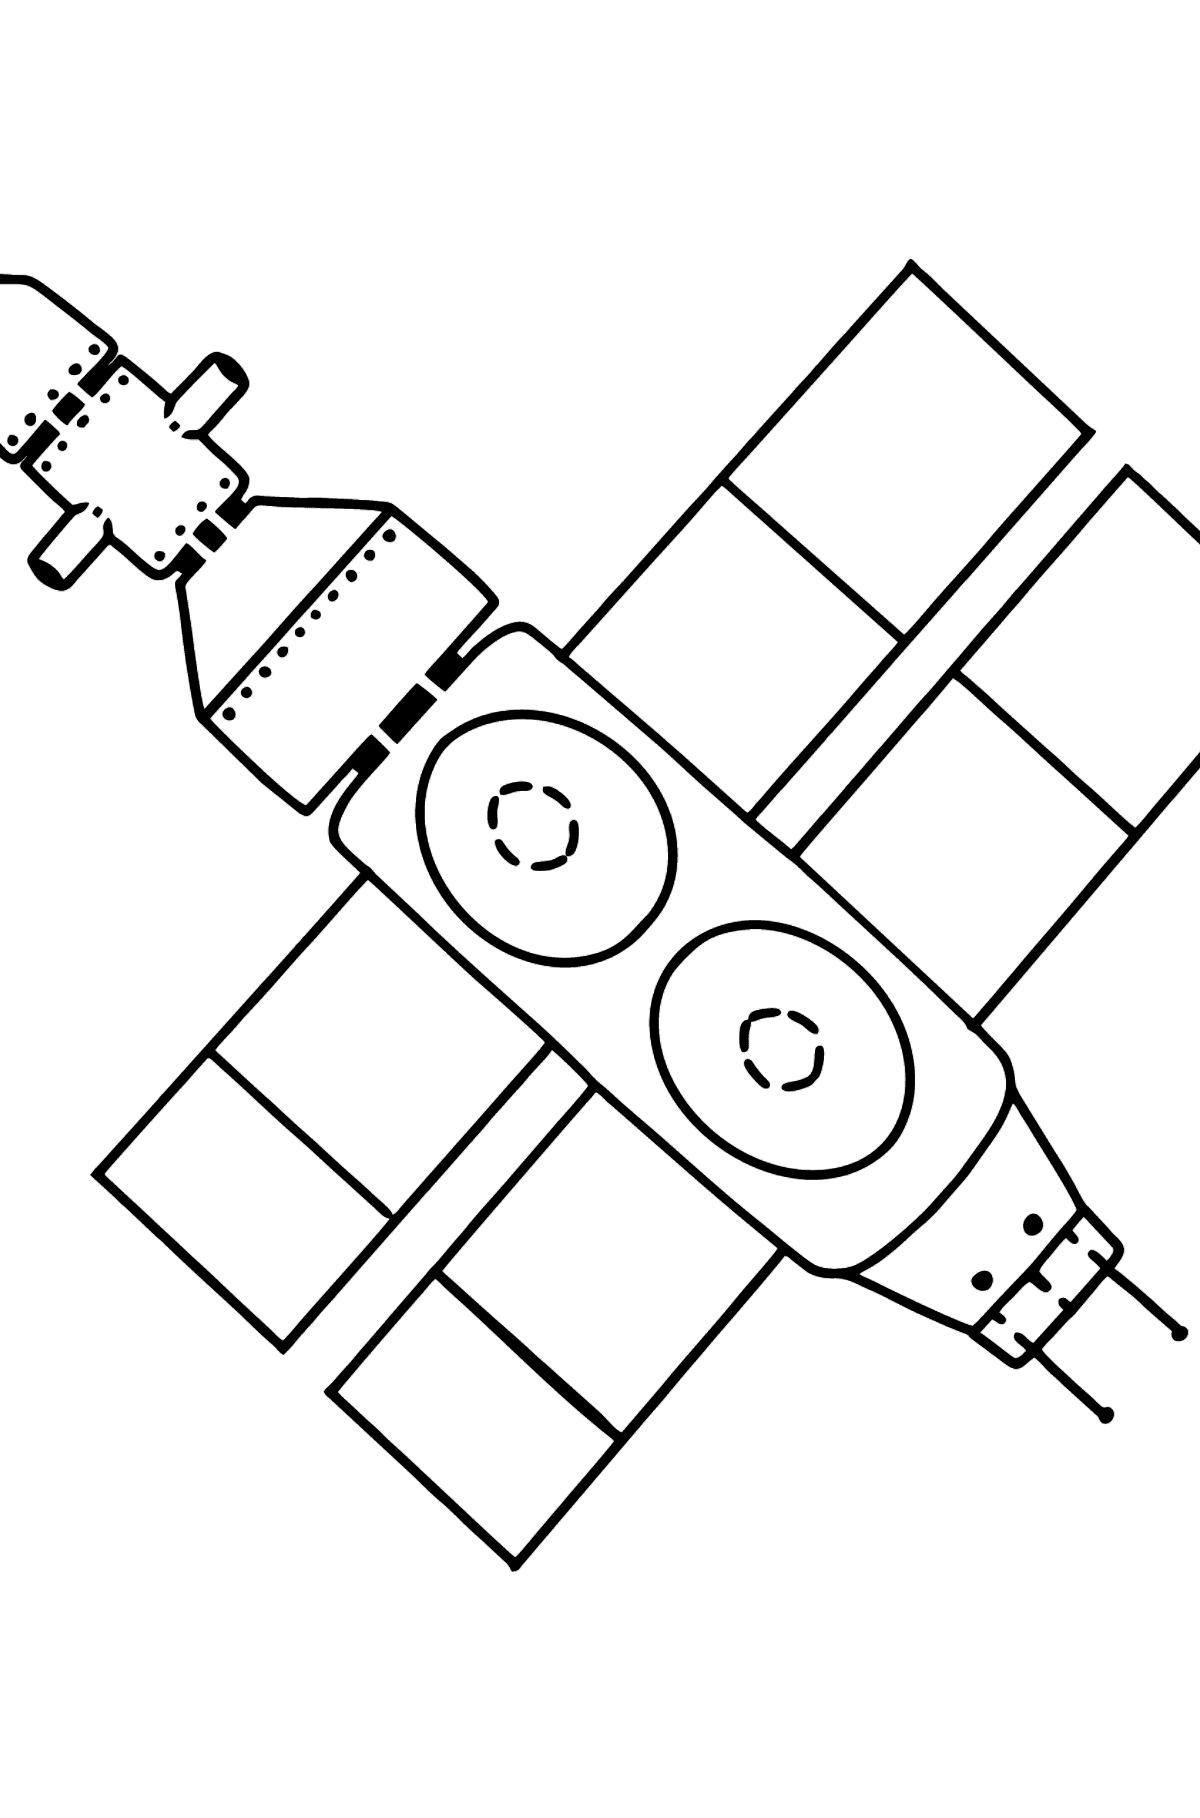 Spaceship coloring page - Coloring Pages for Kids